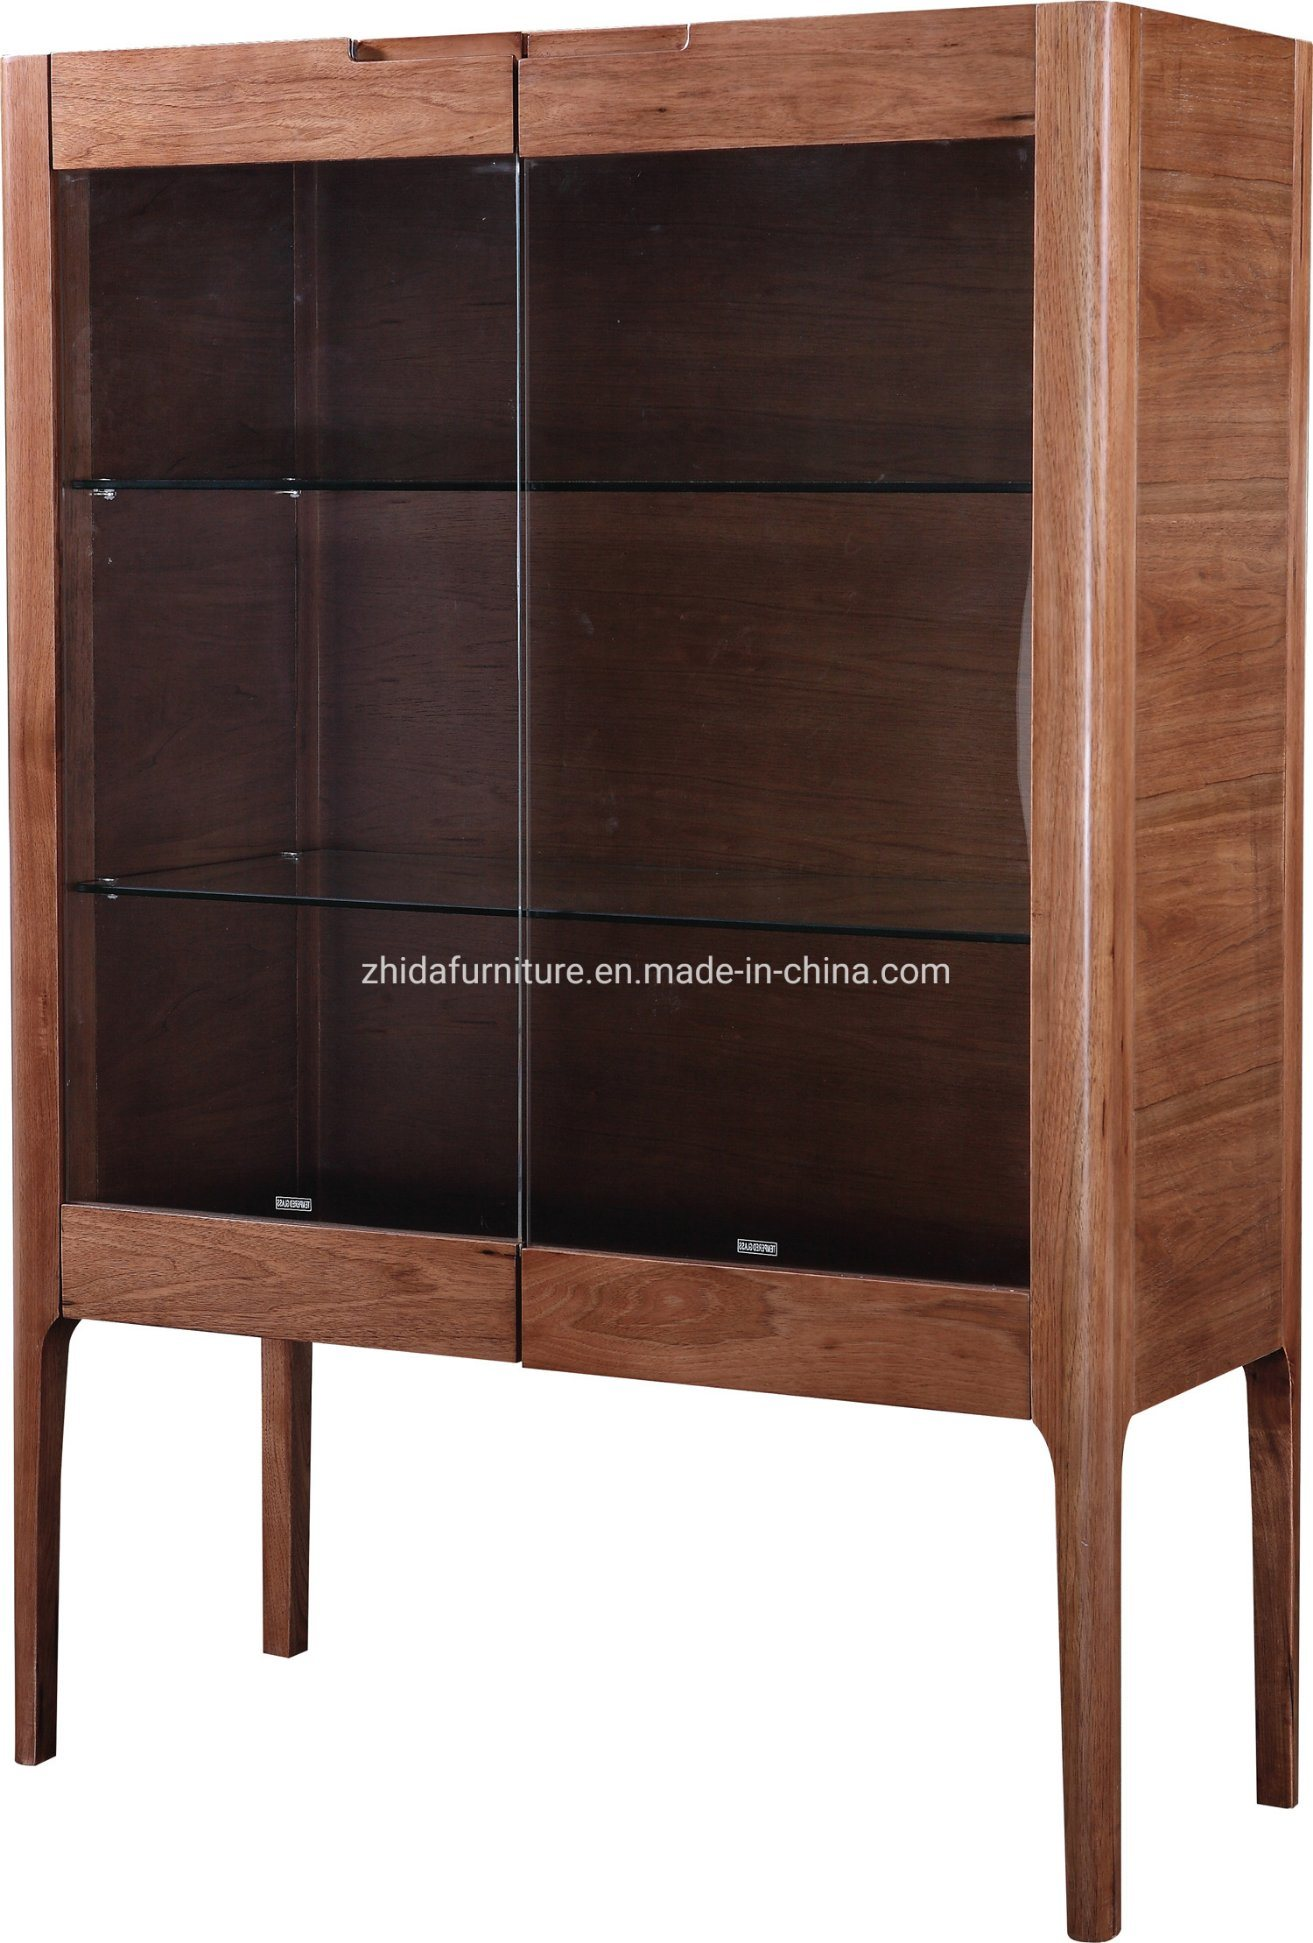 China Modern Living Room Cabinet Glass Cabinet Wooden Cabinet China Home Furniture Wooden Cabinet